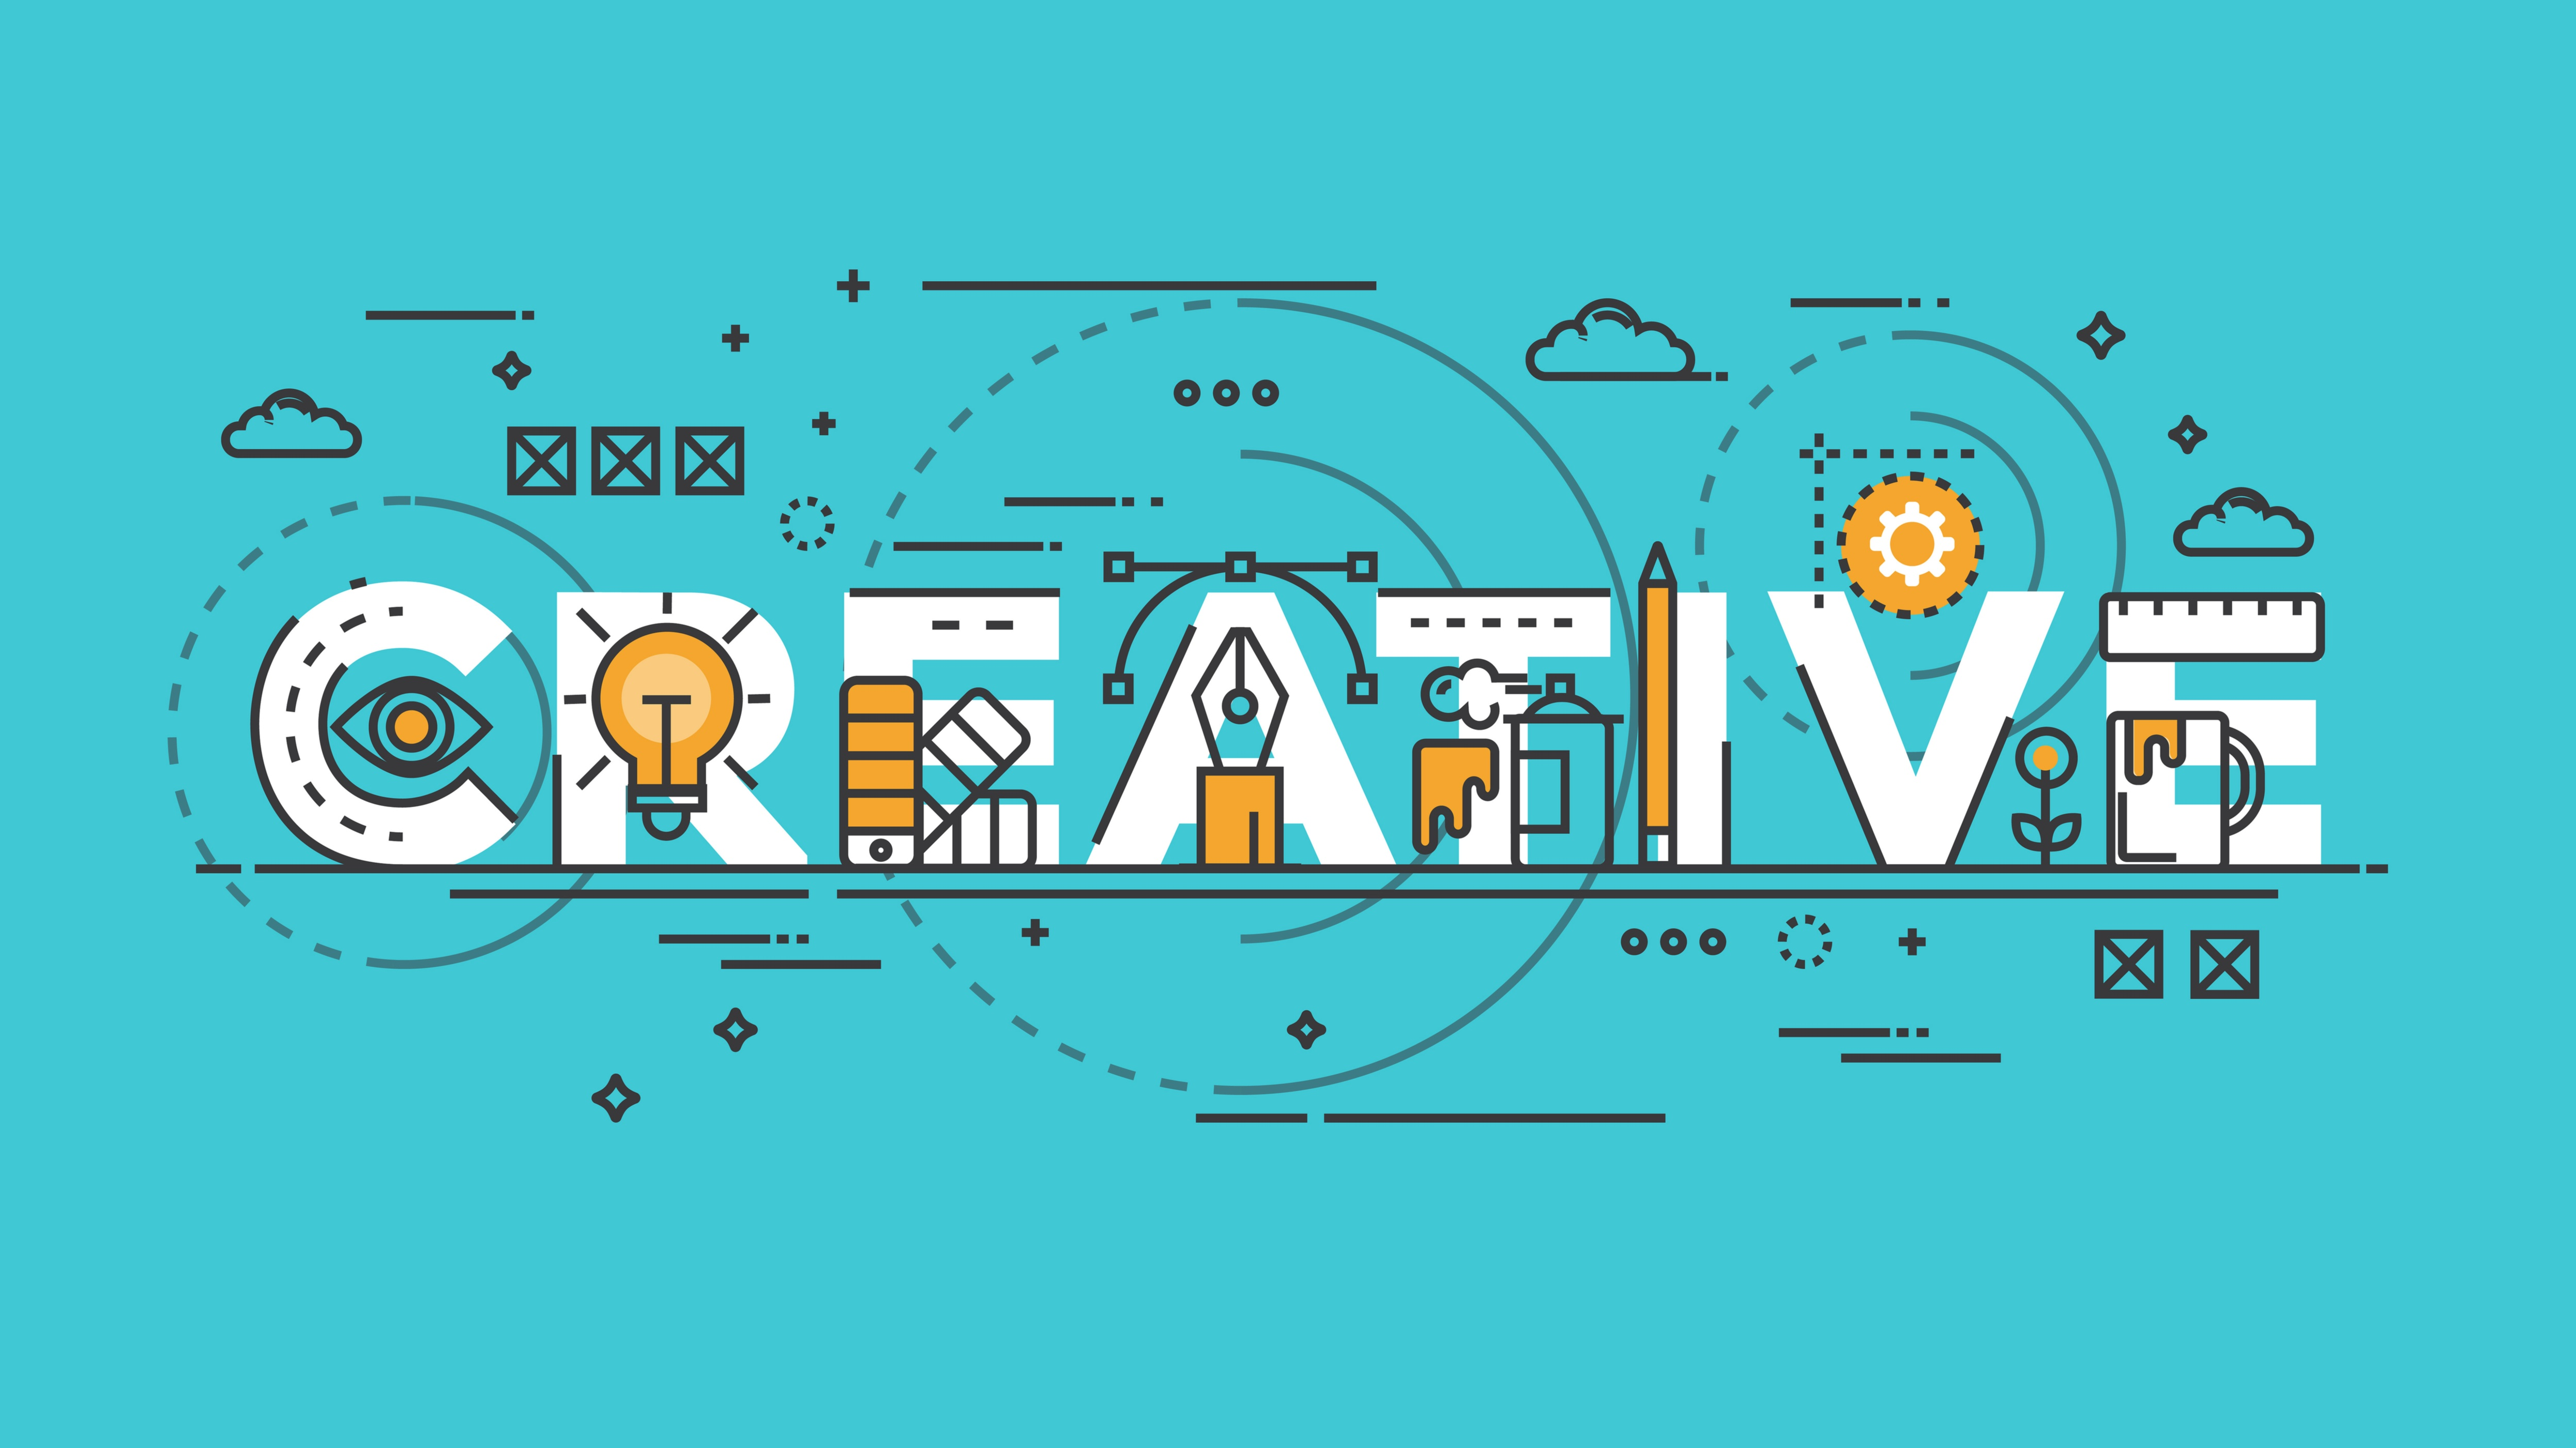 check the post:How Creativity Solves Business Problems for a description of the image